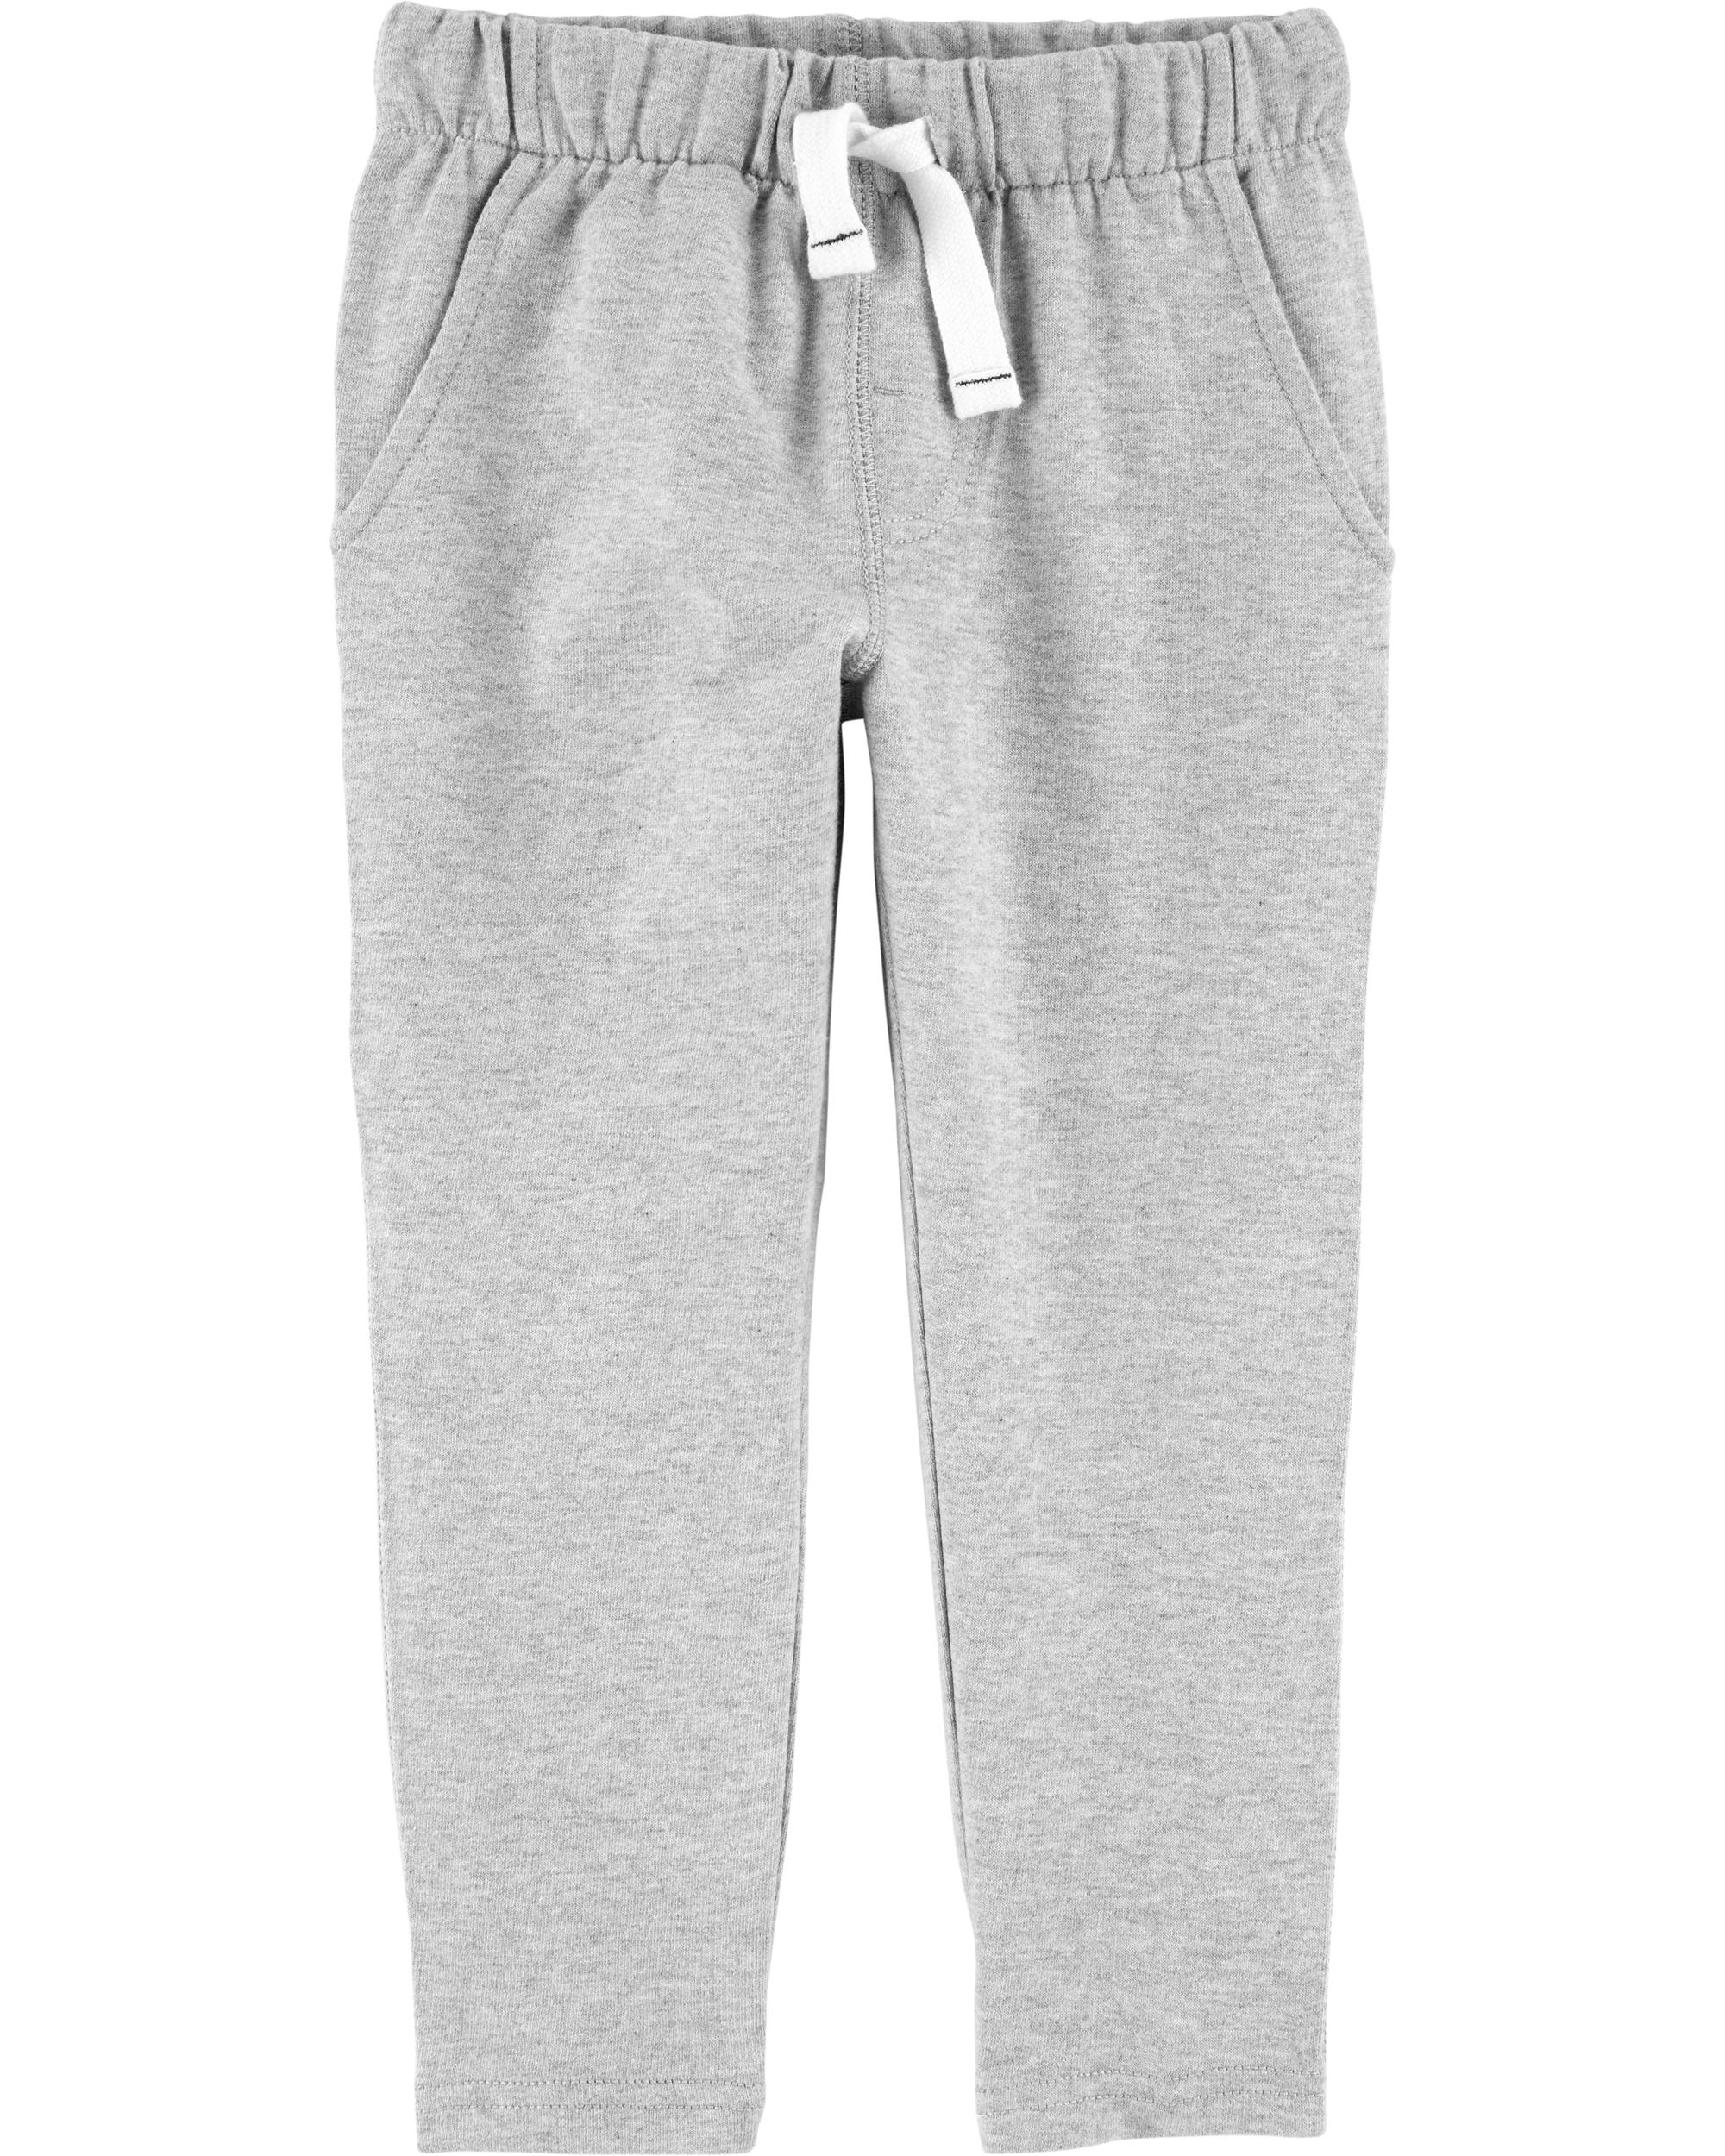 Pull On French Terry Pants |